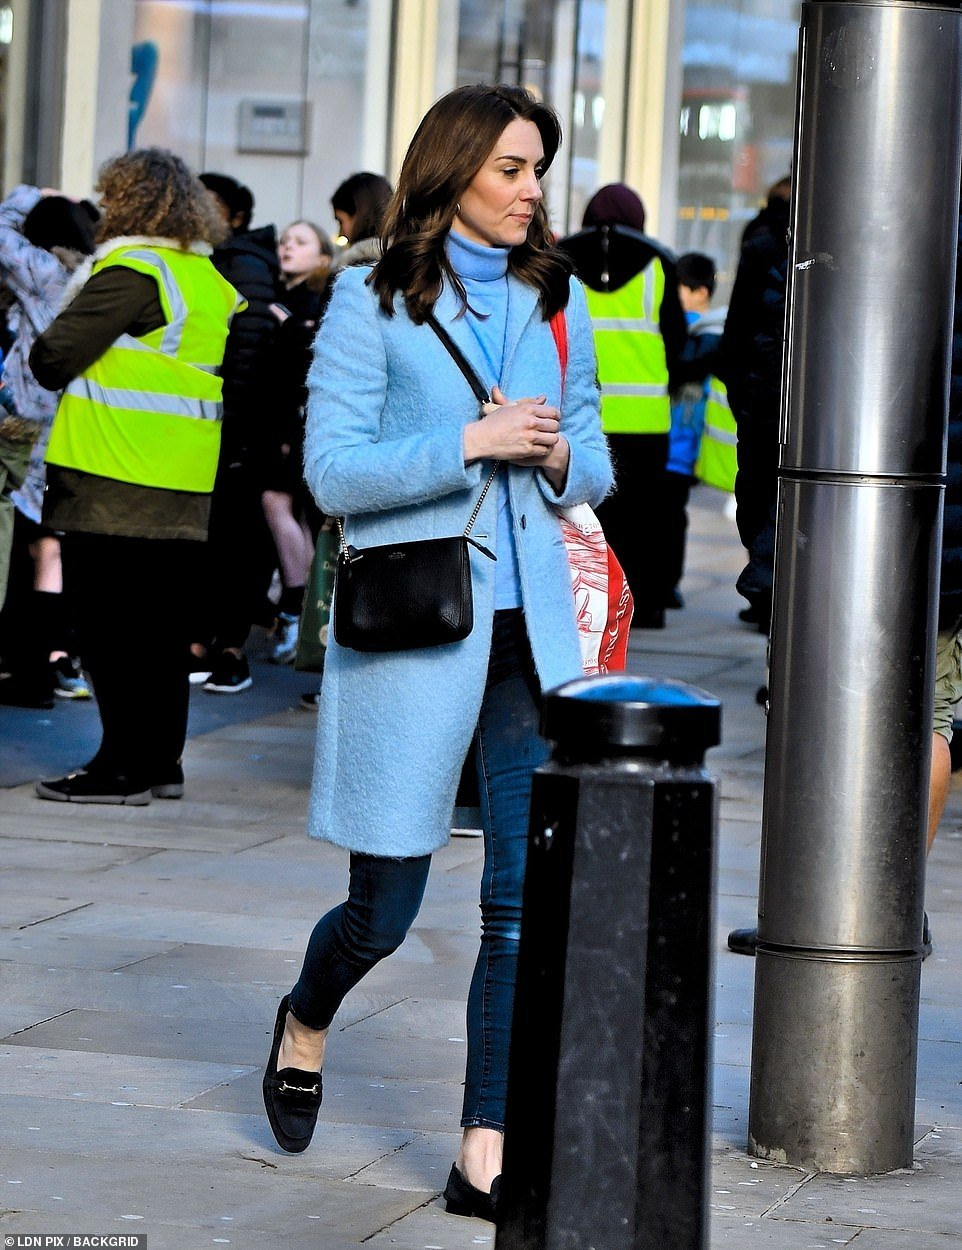 Kate Middleton made her first appearance back in London after returning from her and Prince William